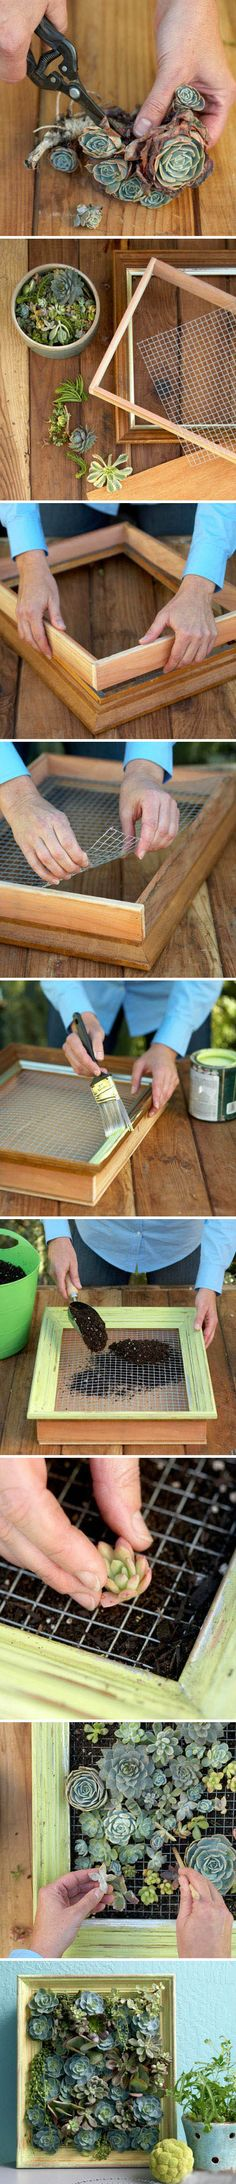 Great Bonsai Idea | Click to see More DIY & Crafts Tutorials on Our Site.